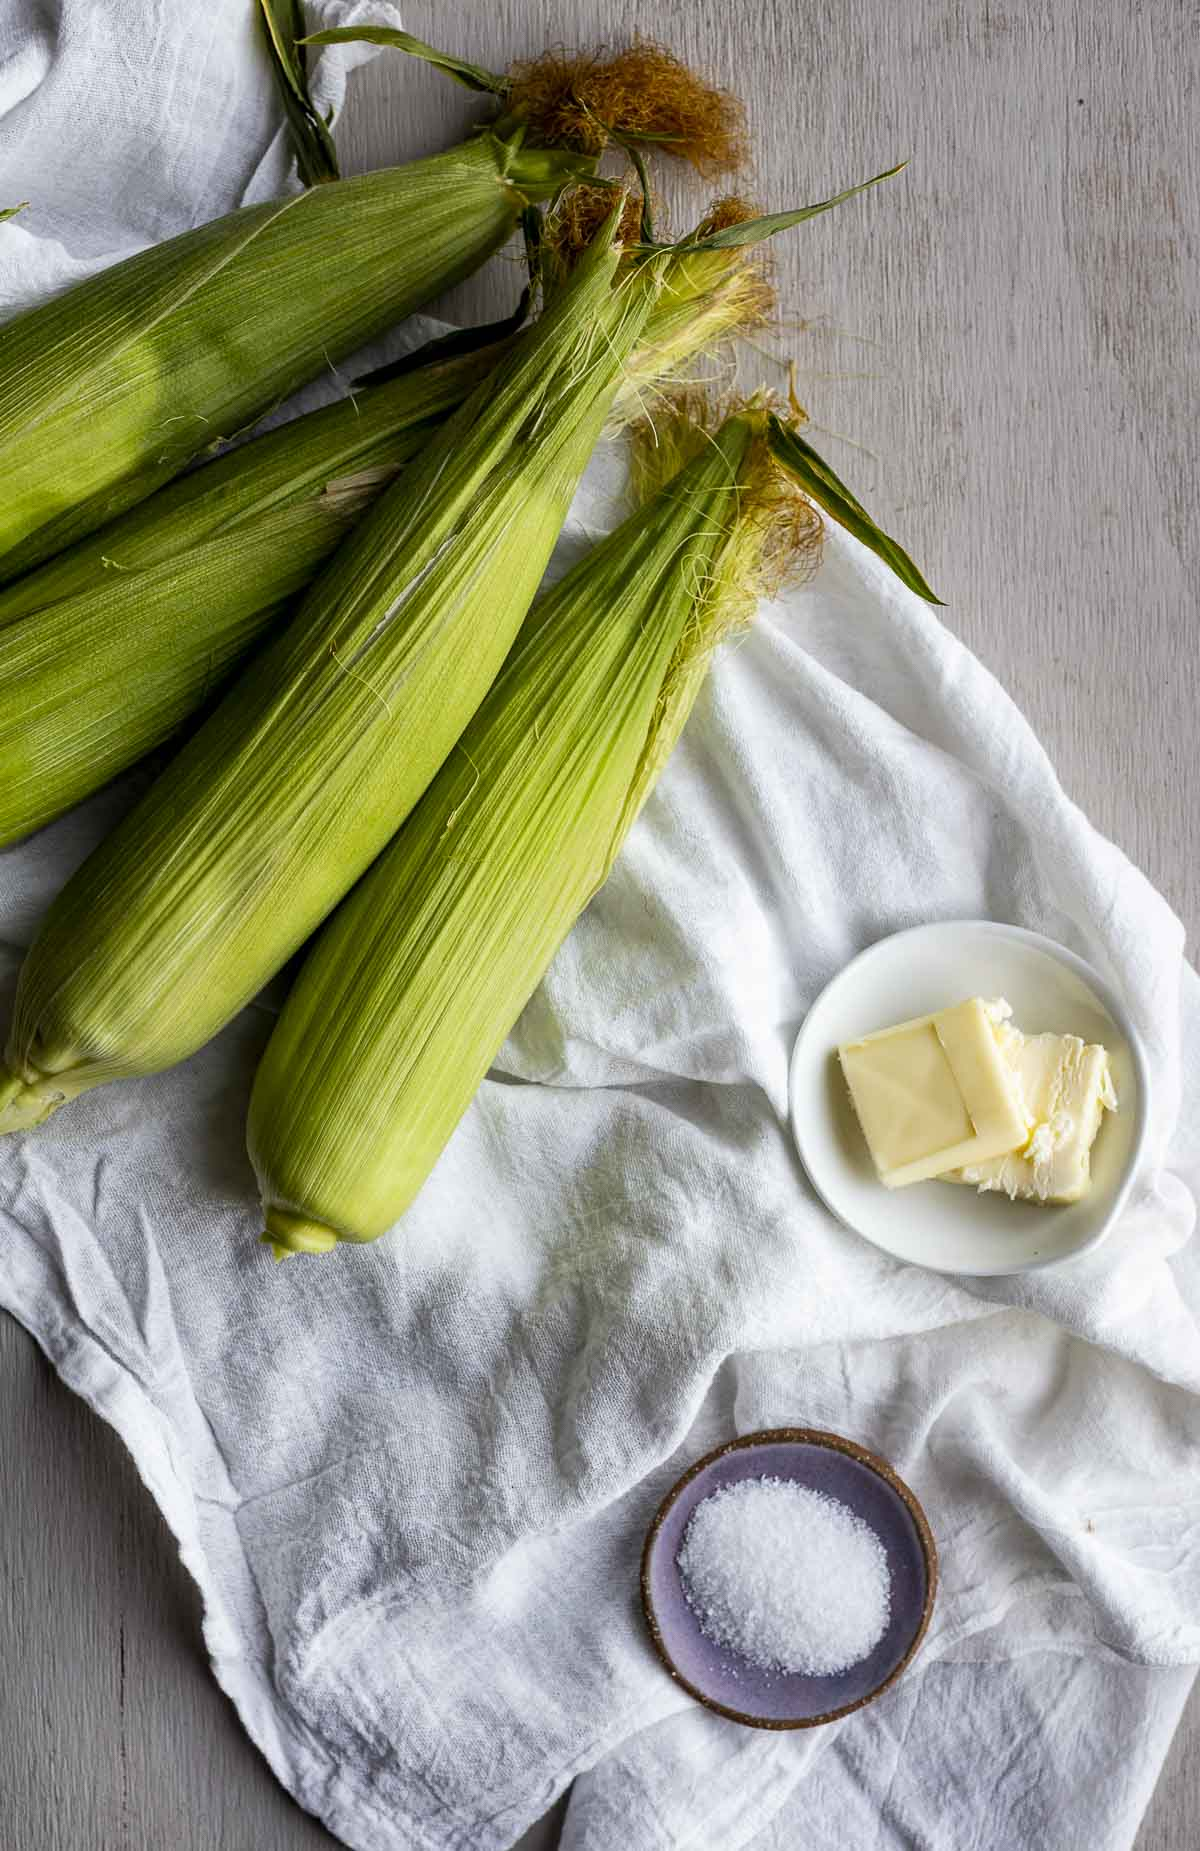 Four ears of corn in their husks, slices of butter and salt arranged individually on a white cloth.